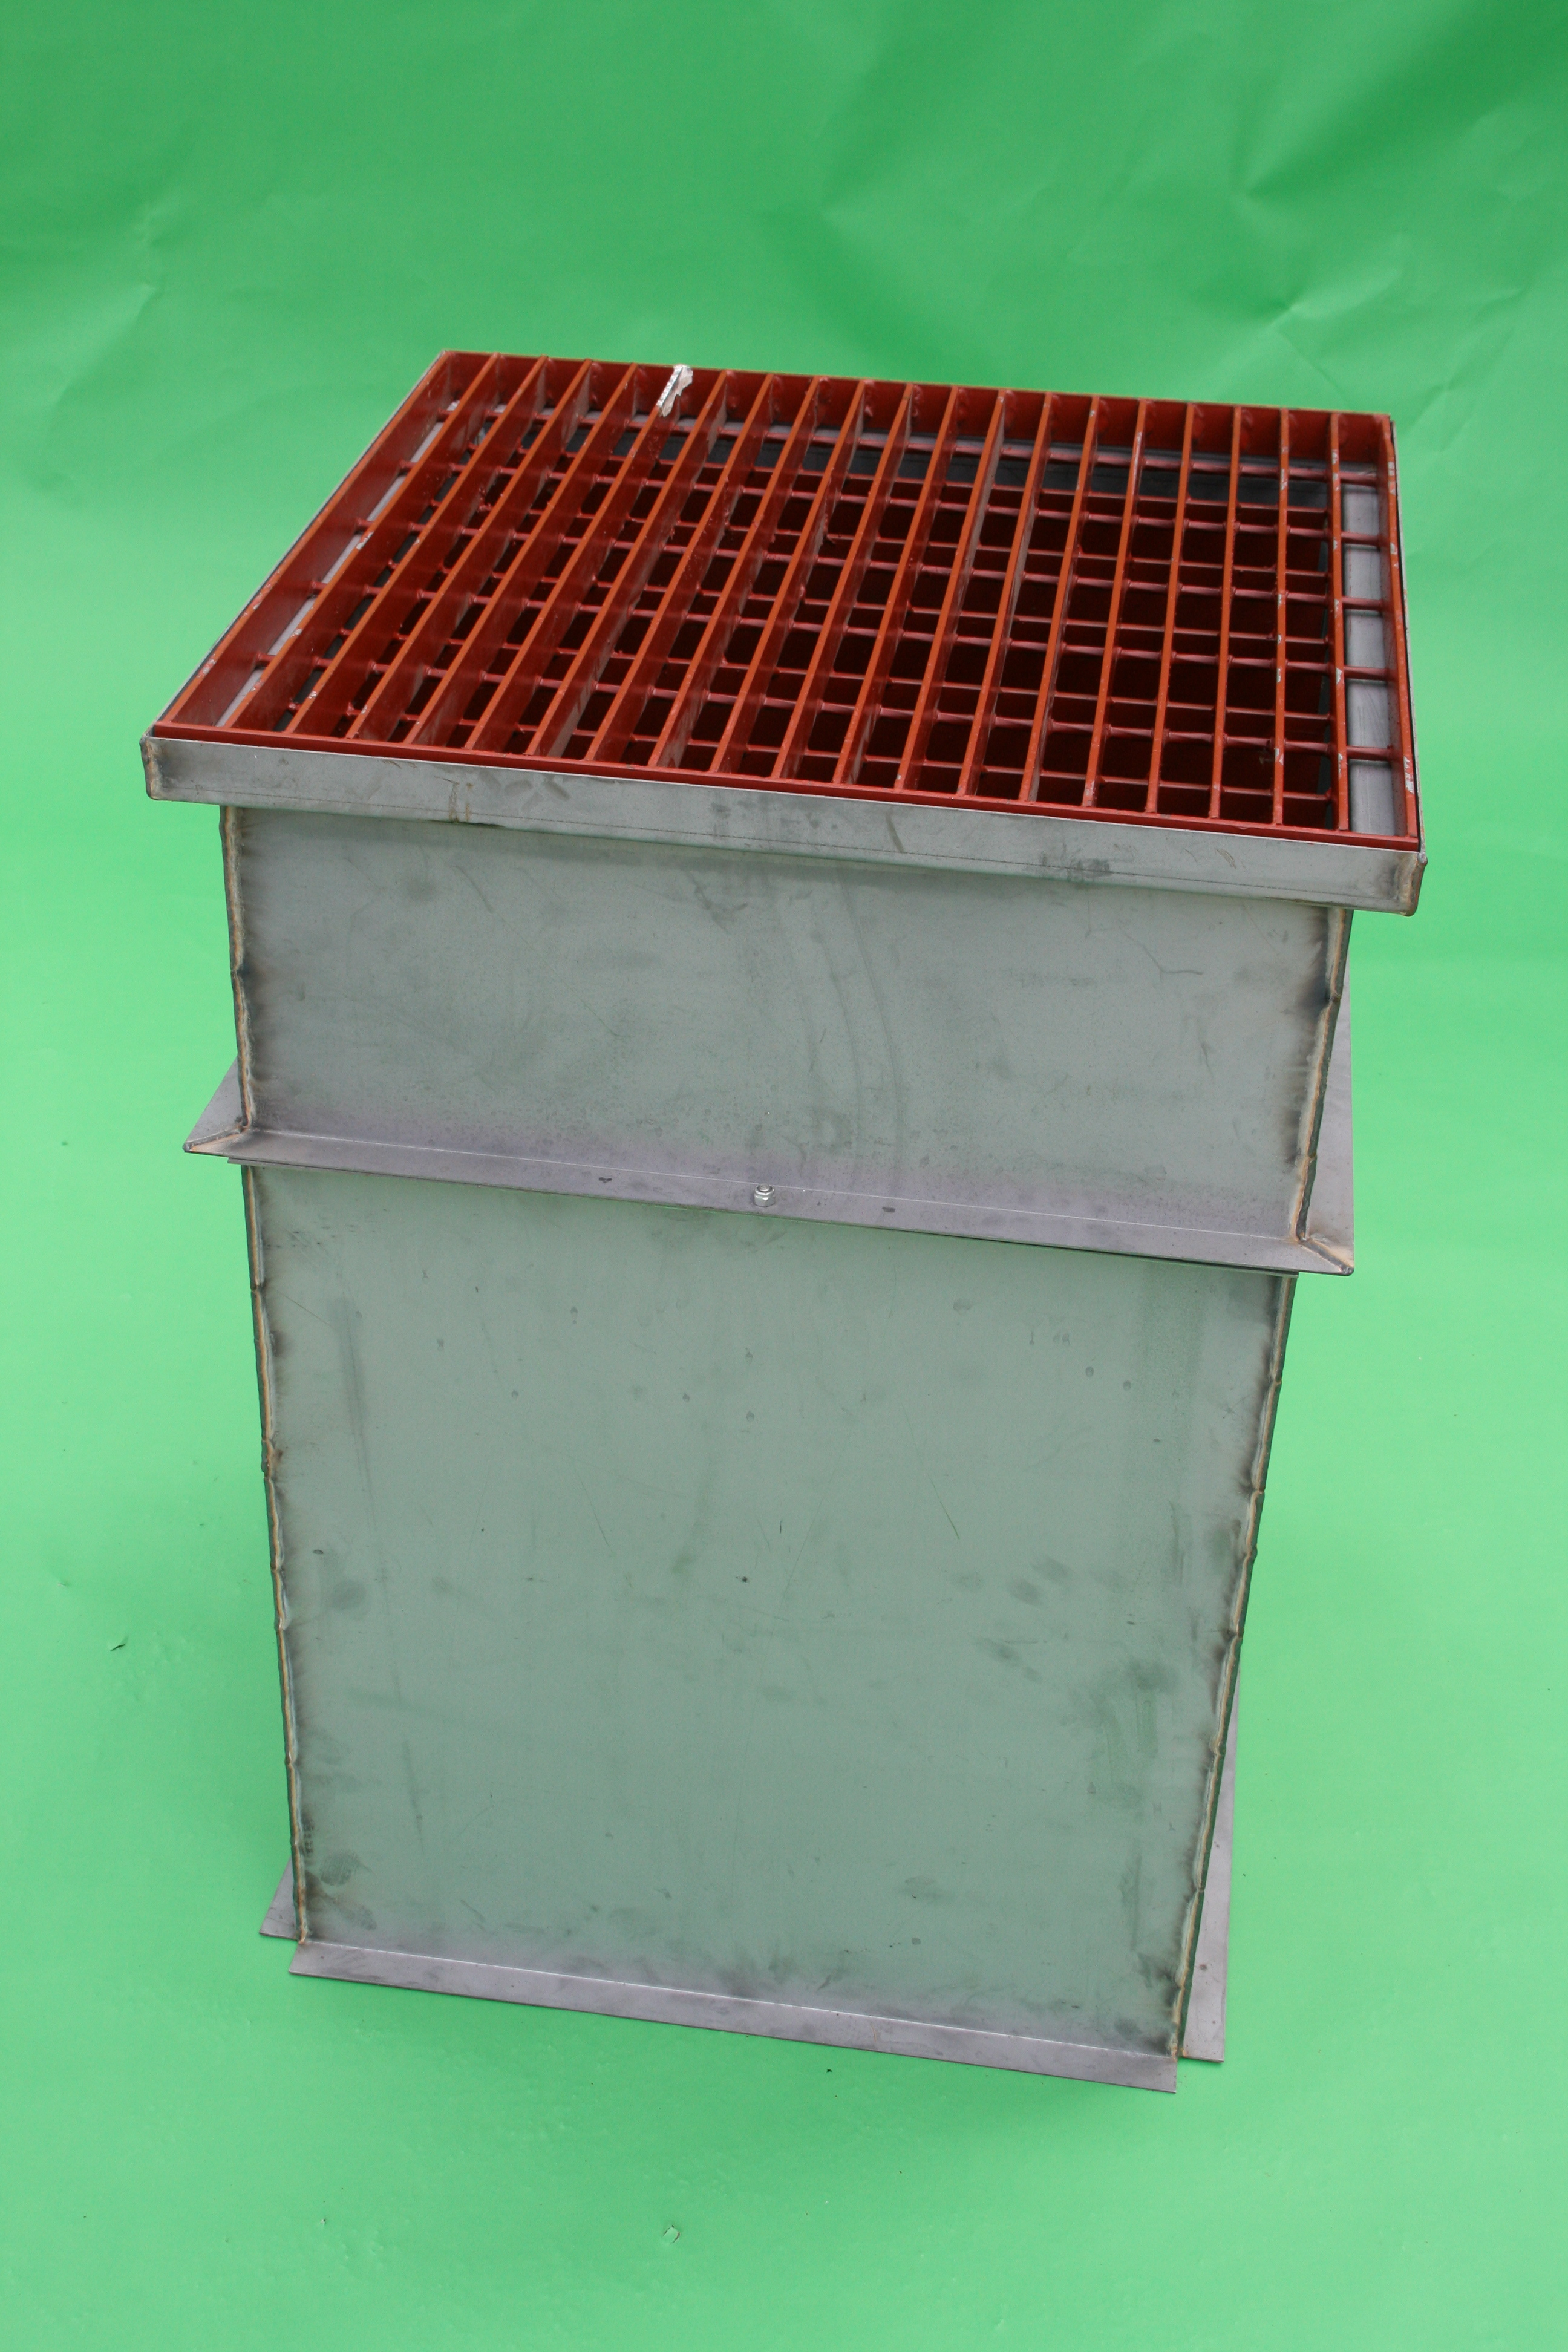 2x2 catch basin sump unit with cast iron grate and 4ft bottom stool